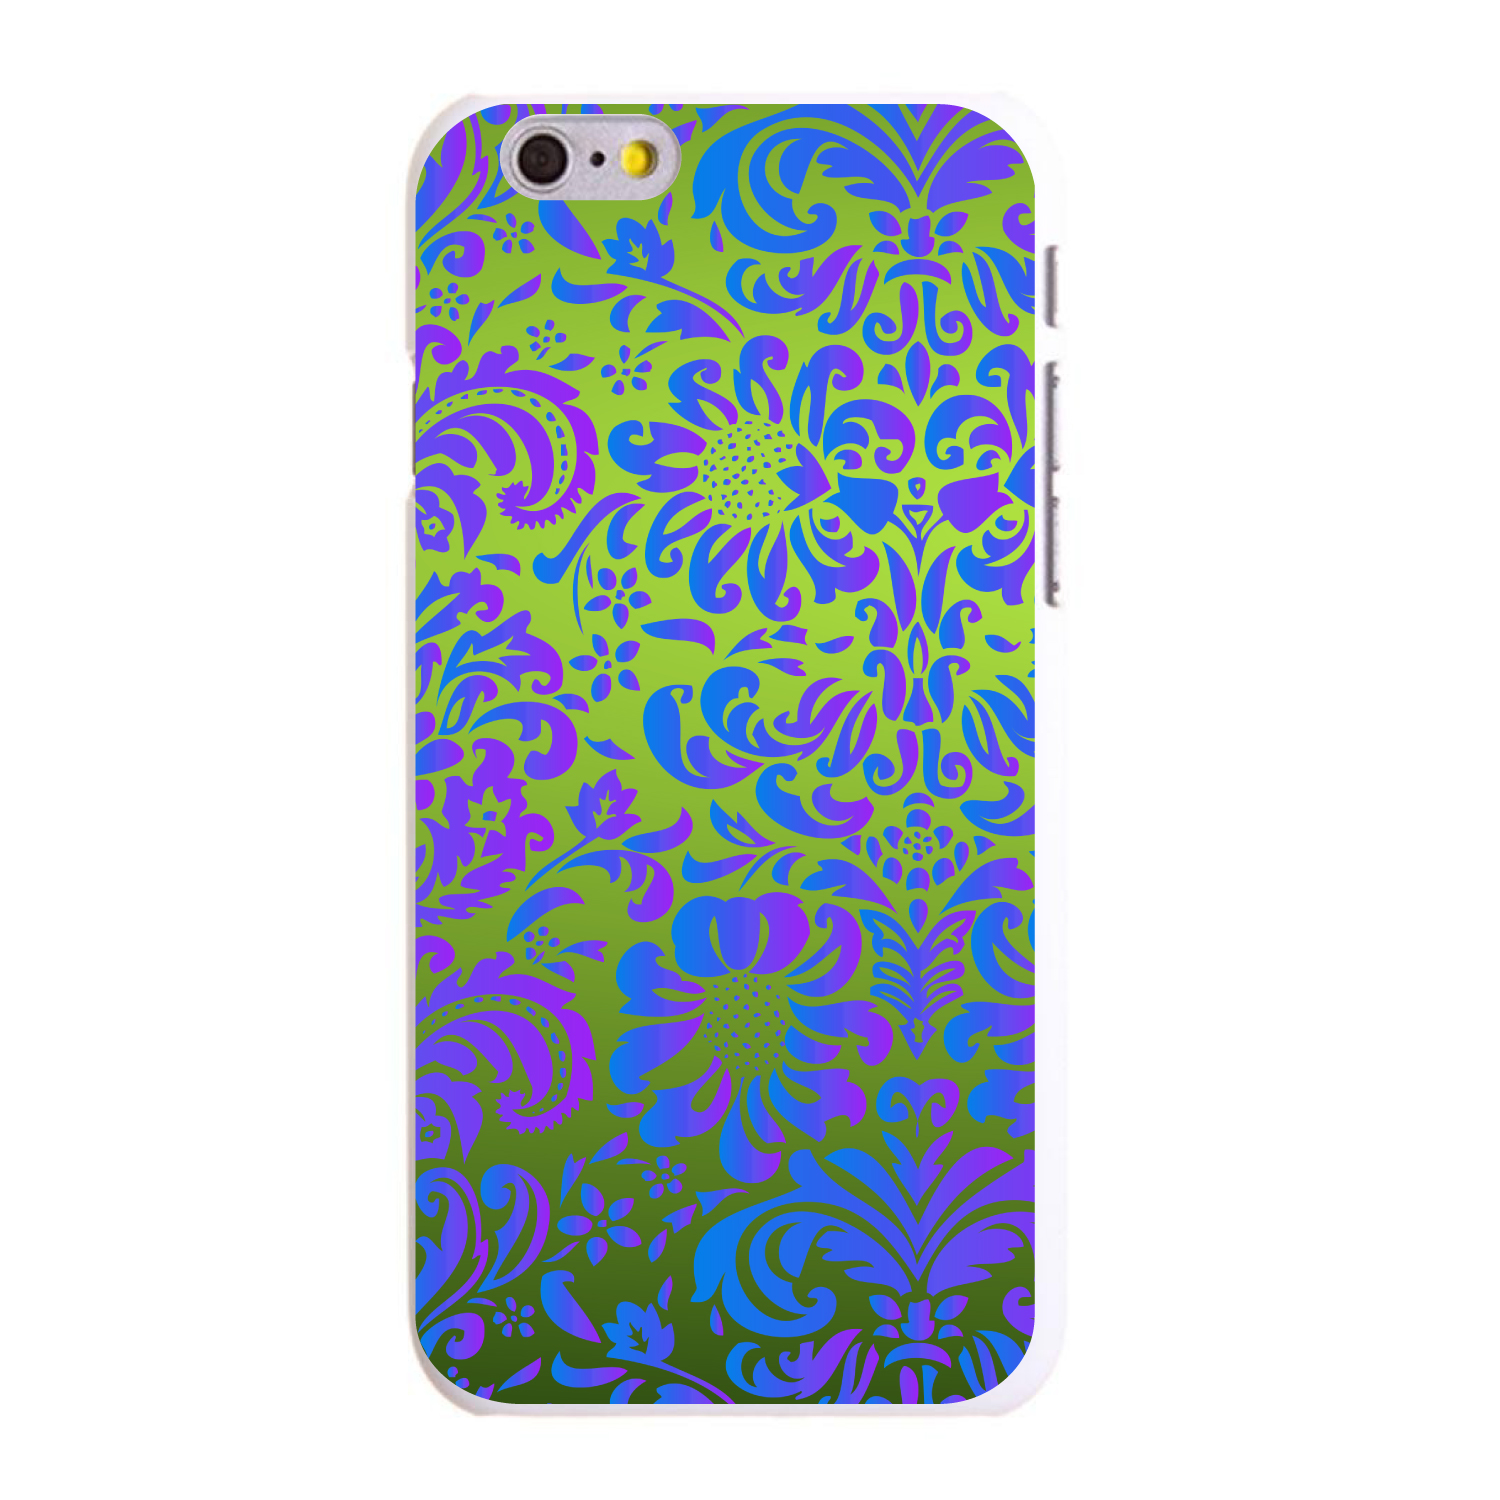 "CUSTOM White Hard Plastic Snap-On Case for Apple iPhone 6 / 6S (4.7"" Screen) - Green Purple Blue Floral Pattern"